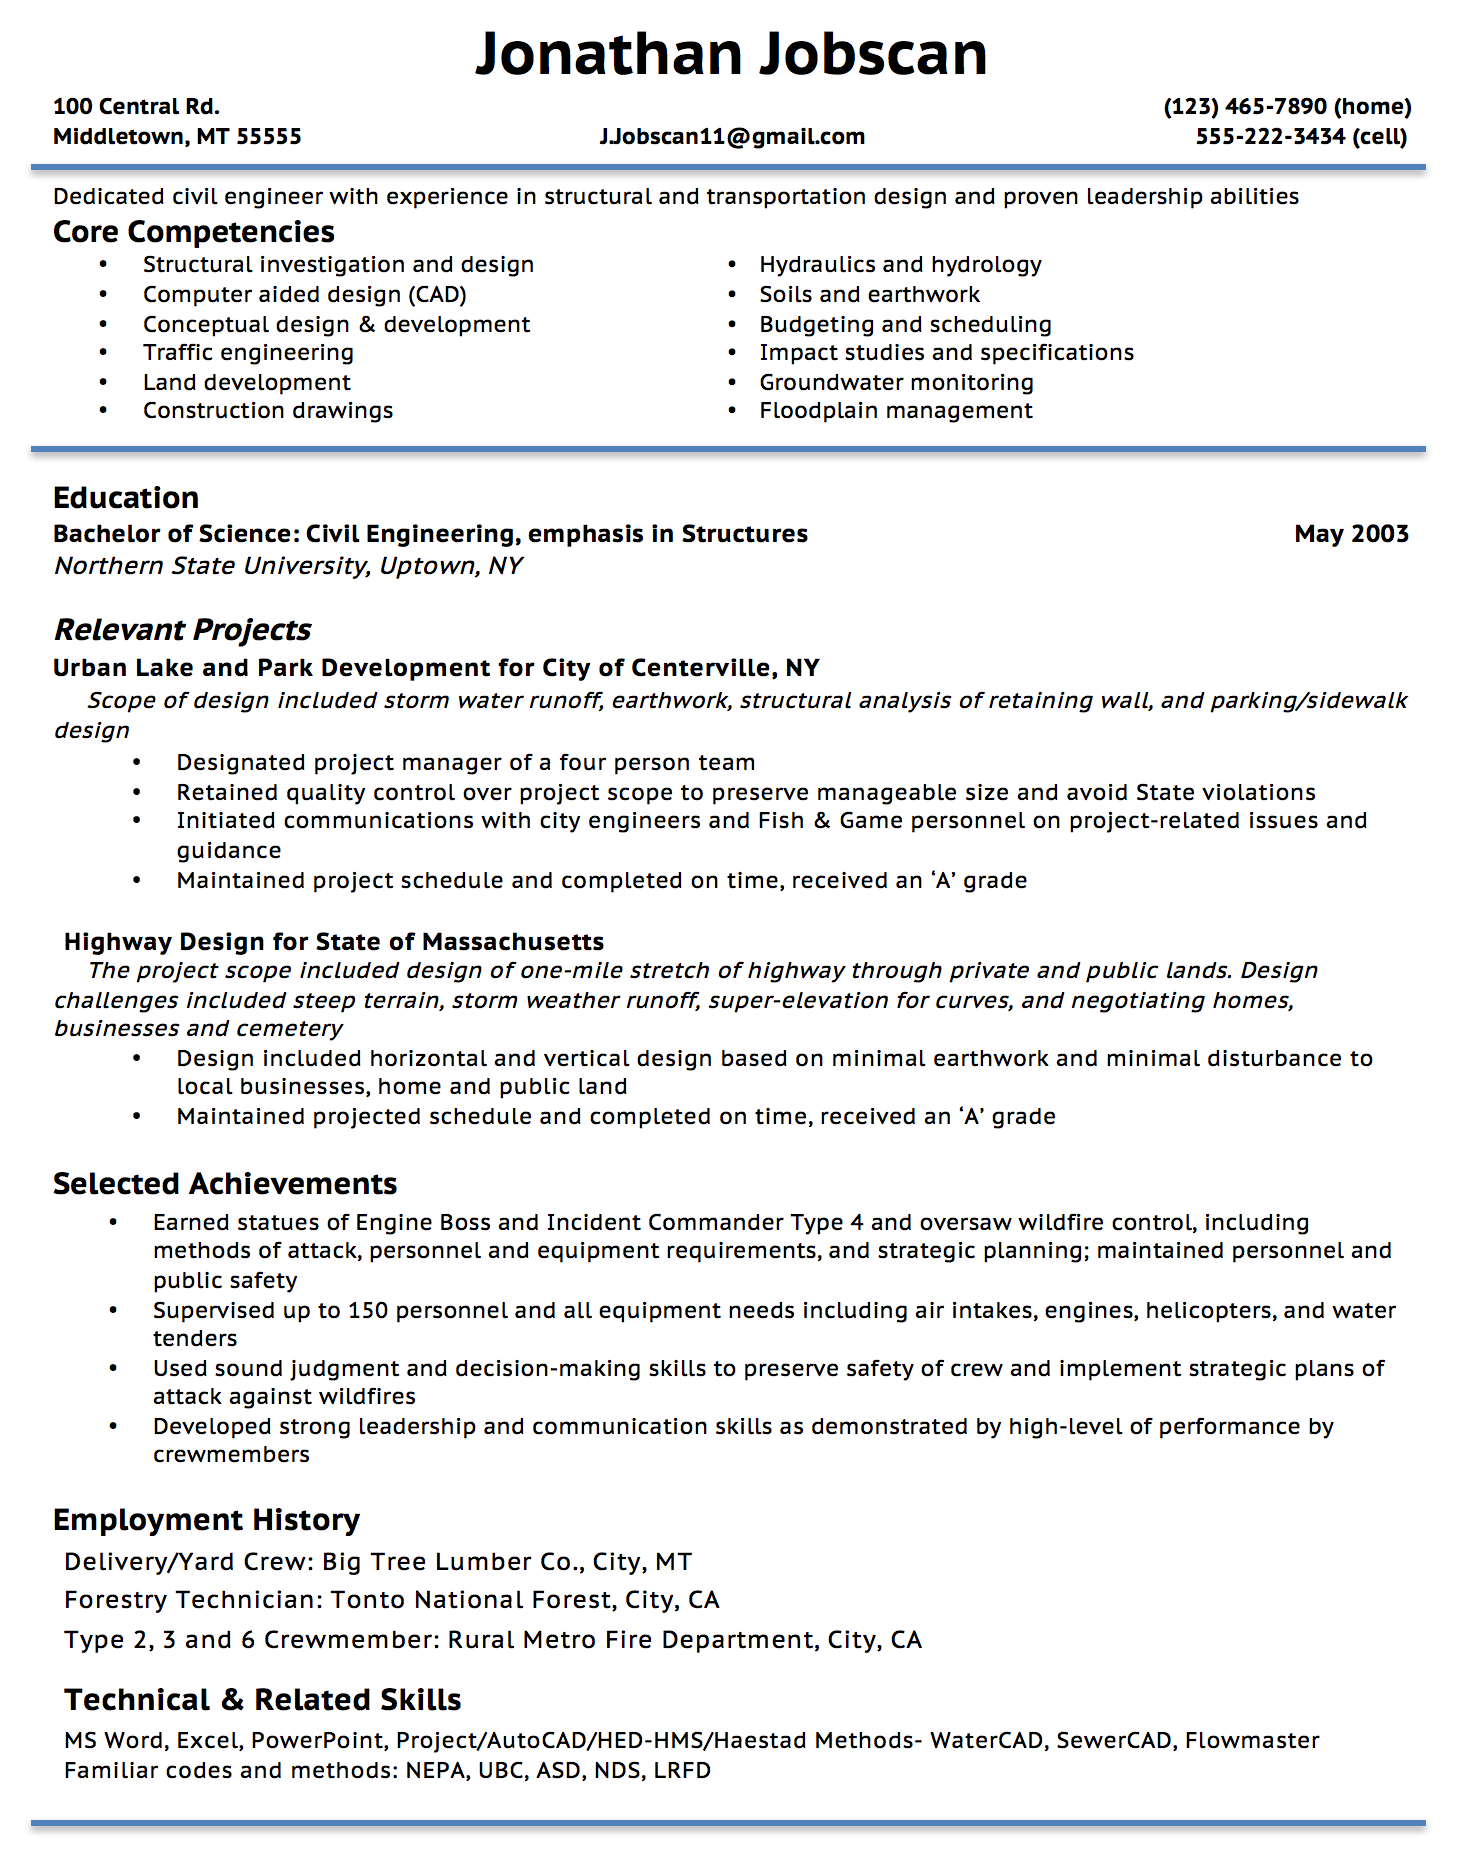 Opposenewapstandardsus  Ravishing Resume Writing Guide  Jobscan With Interesting Example Of A Functional Resume Format With Easy On The Eye Communications Director Resume Also Importance Of Resume In Addition Entry Level Resume Objectives And Clevel Executive Assistant Resume As Well As Phlebotomy Resume Sample Additionally Experienced Rn Resume From Jobscanco With Opposenewapstandardsus  Interesting Resume Writing Guide  Jobscan With Easy On The Eye Example Of A Functional Resume Format And Ravishing Communications Director Resume Also Importance Of Resume In Addition Entry Level Resume Objectives From Jobscanco